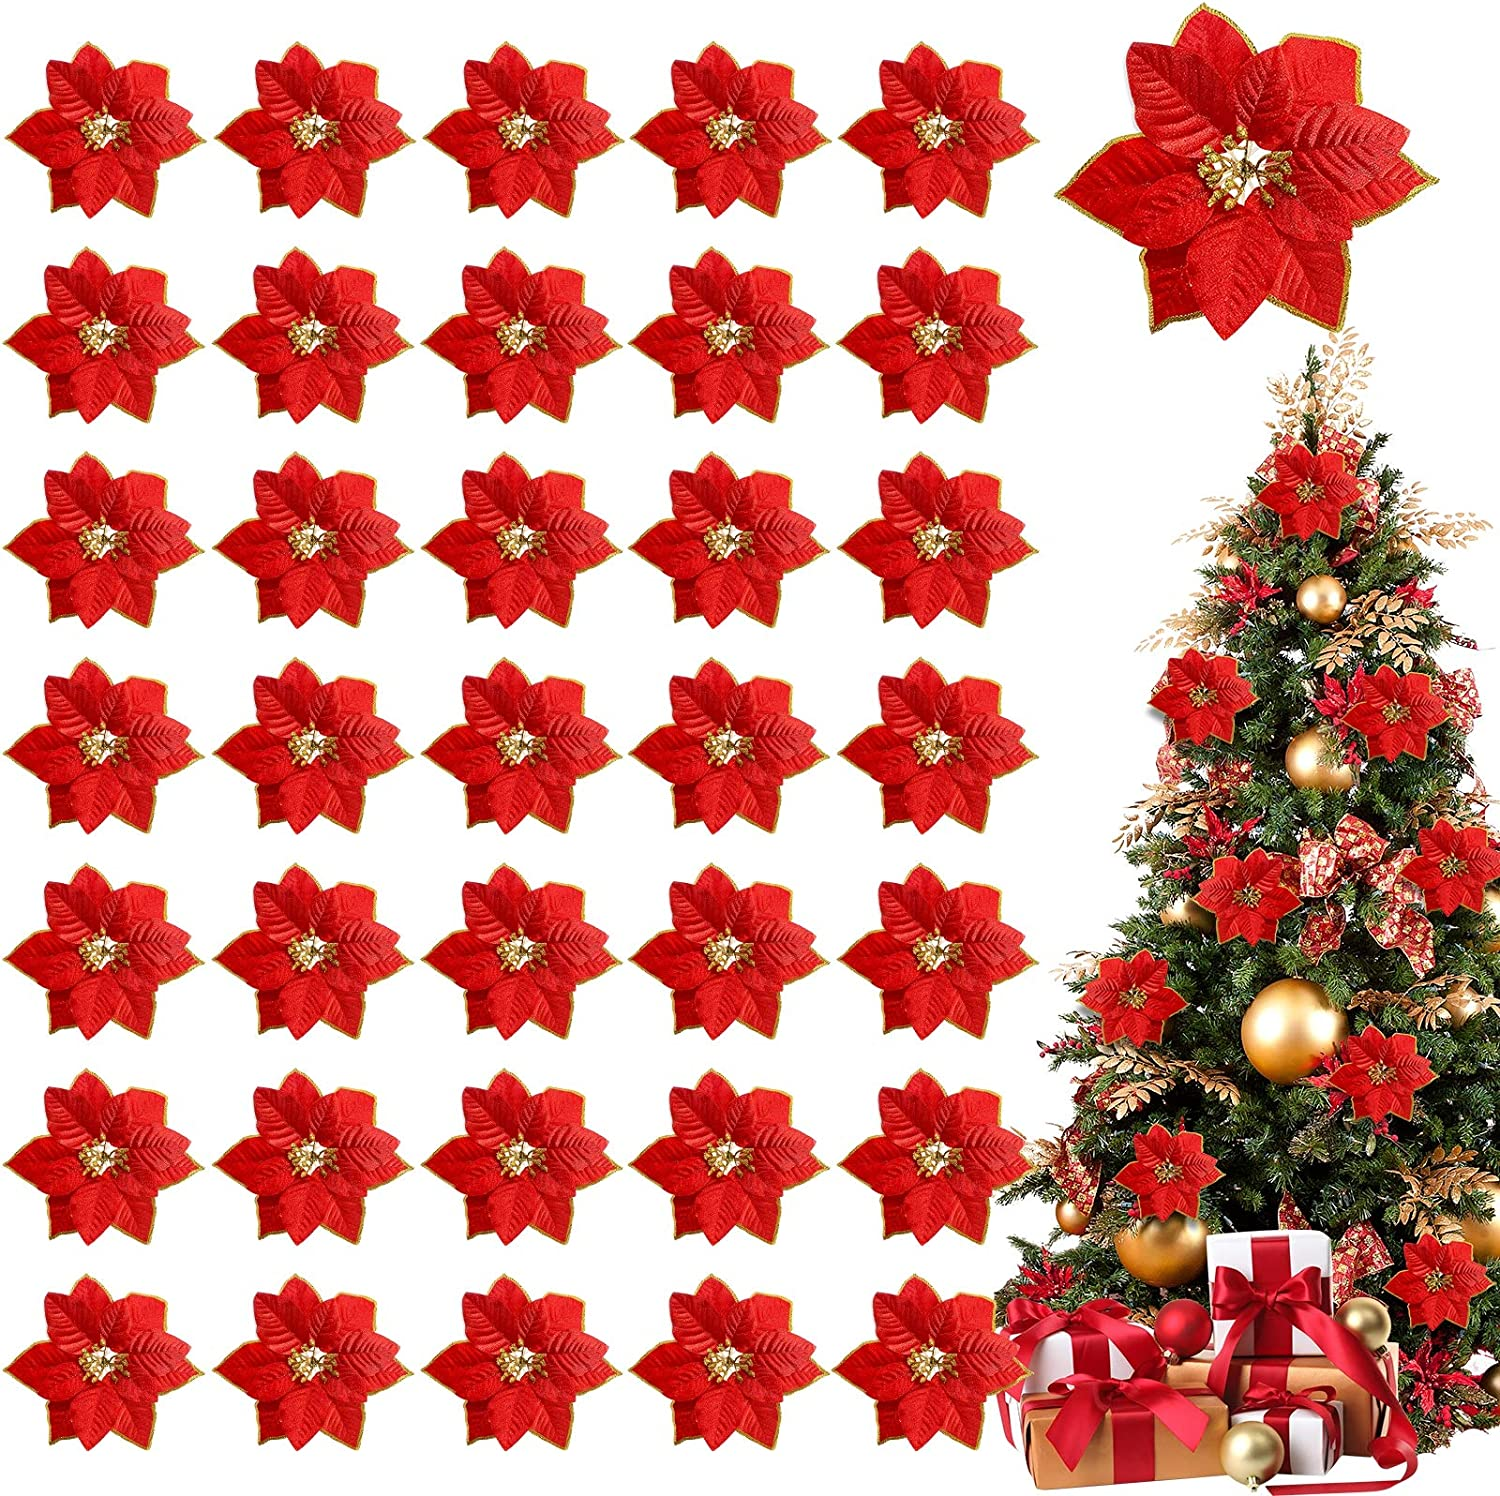 TURNMEON 36 Pack Christmas Gold Silver Glitter Poinsettia Artificial Silk Flowers Picks Christmas Tree Ornaments 4 Inch Wide for Gold Christmas Tree Wreaths Garland Holiday Decoration (Red)